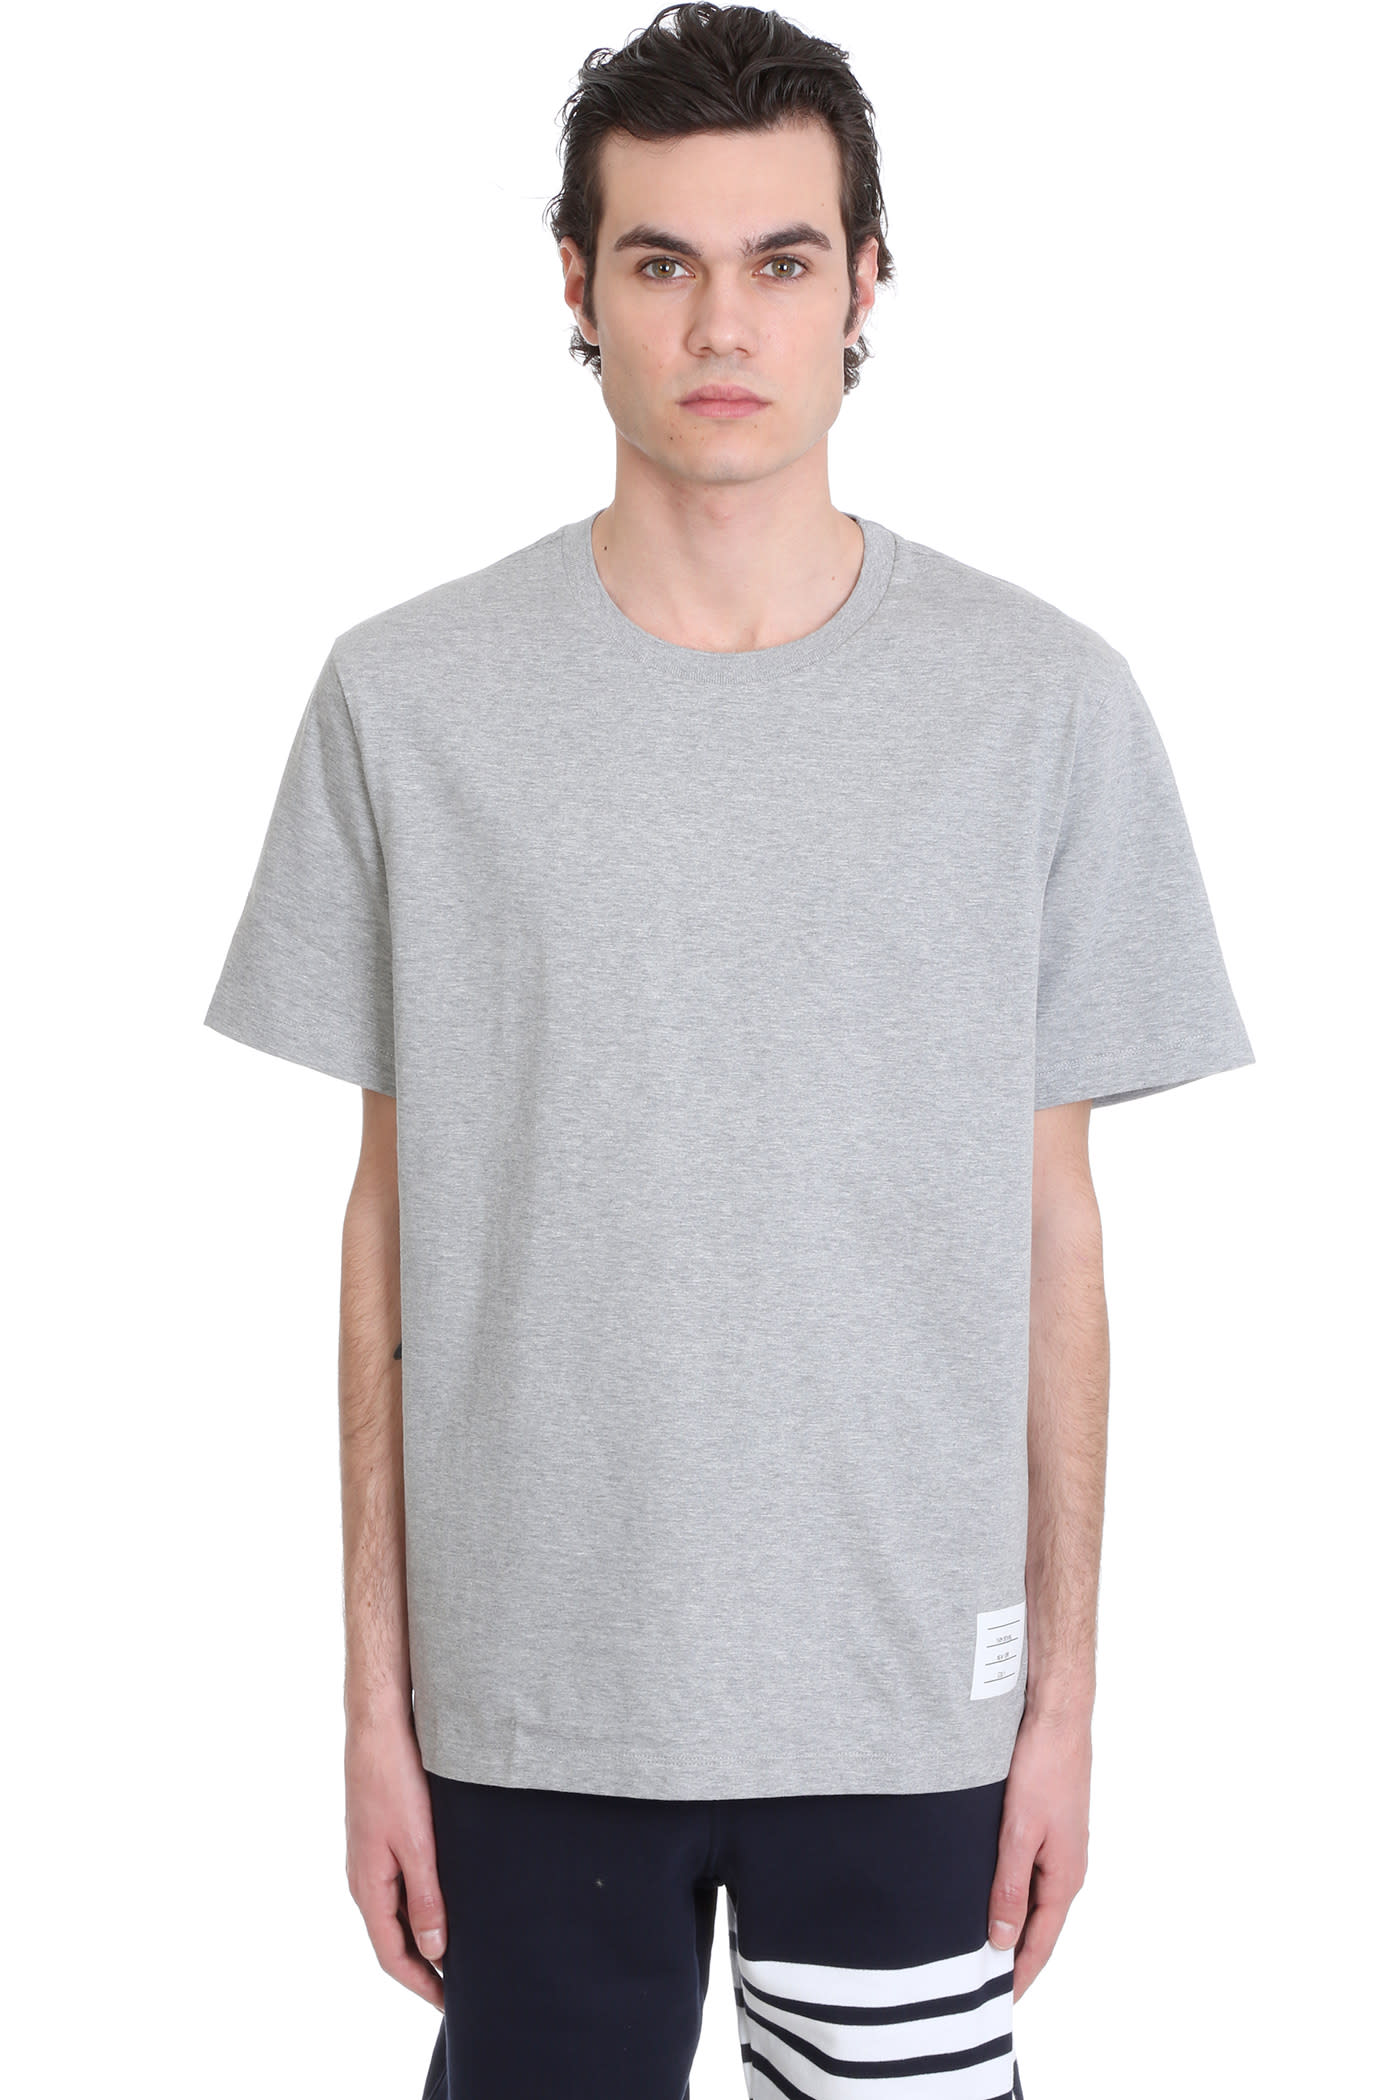 Thom Browne T-SHIRT IN GREY COTTON